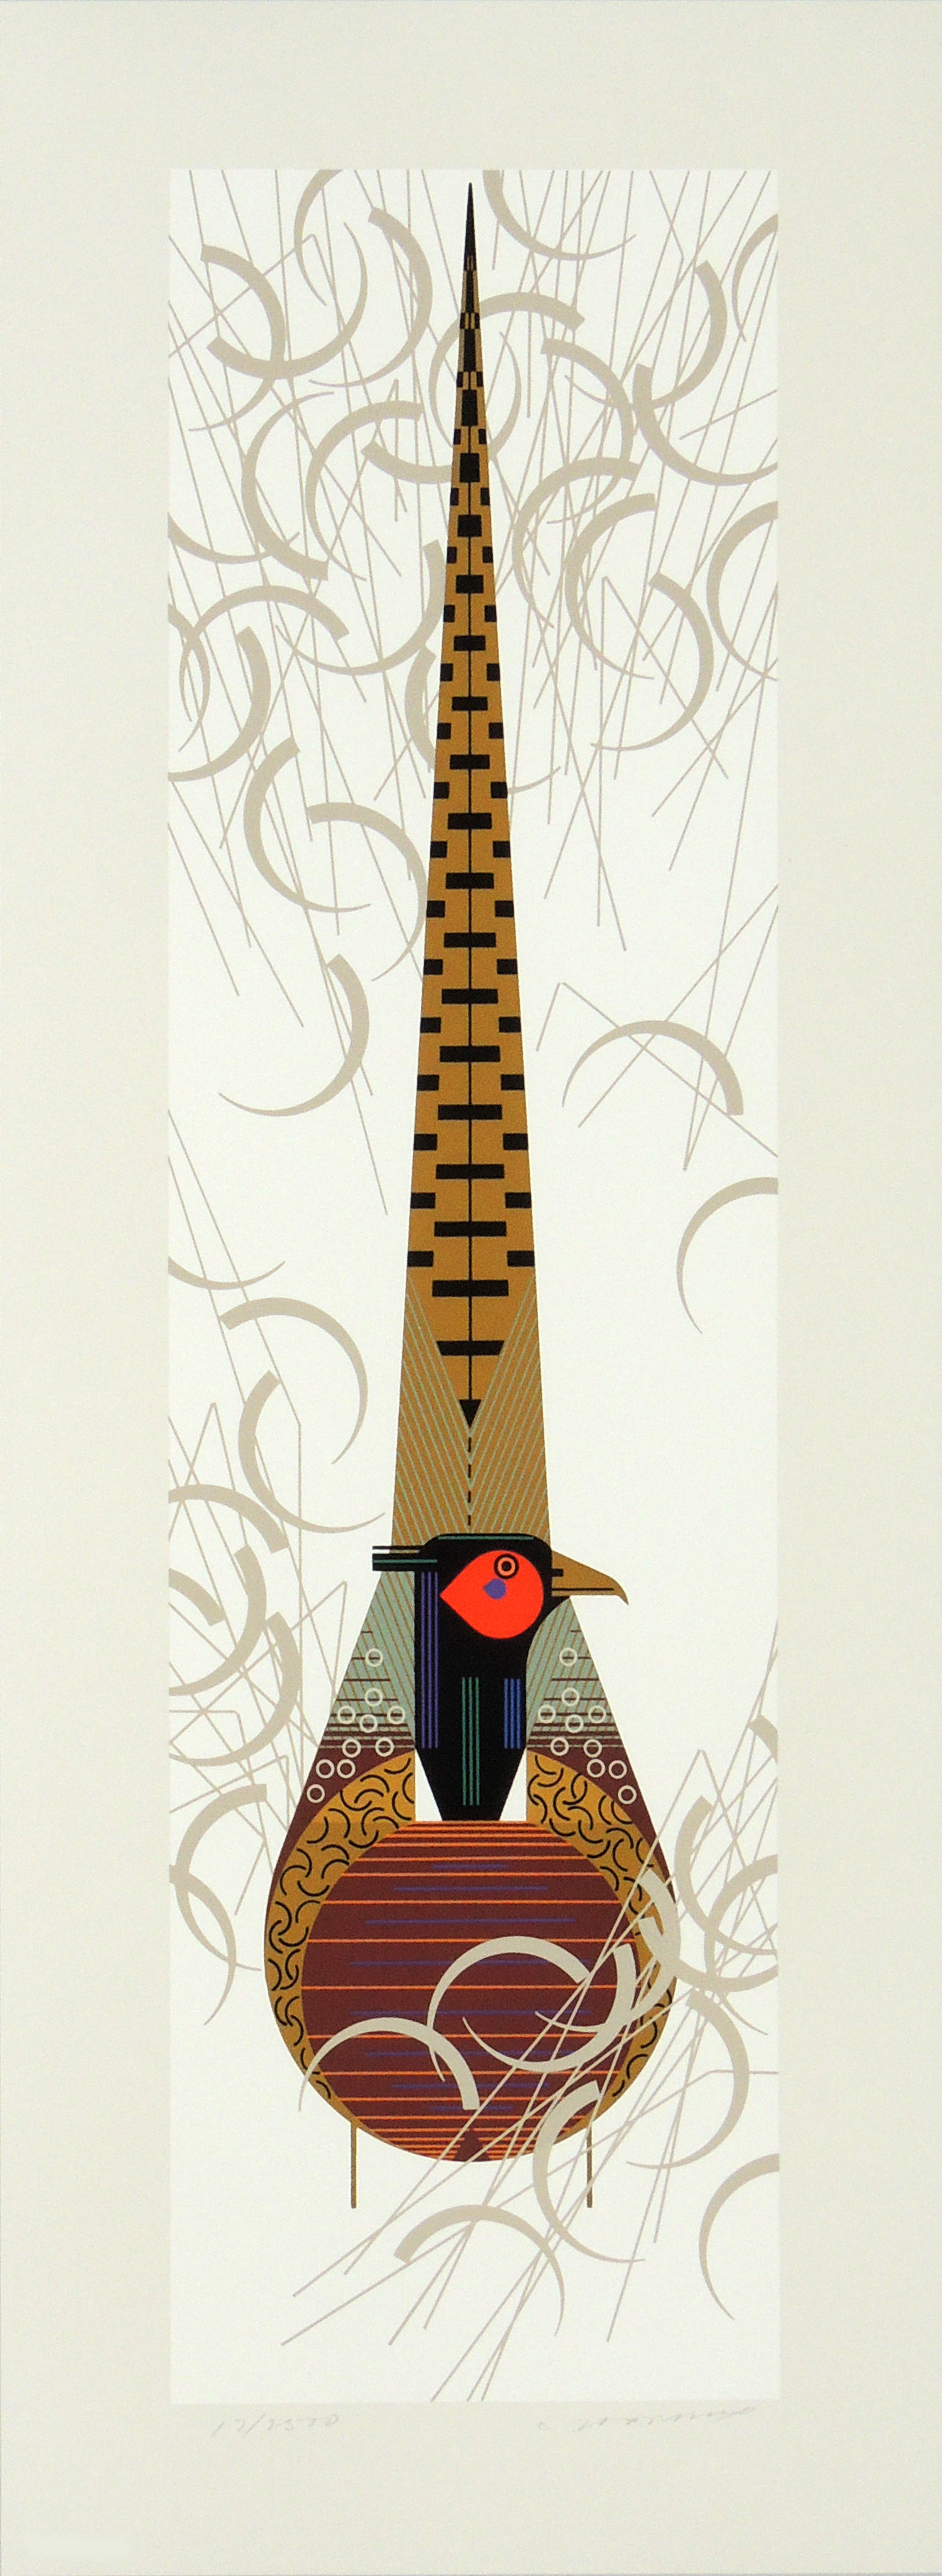 Charley Harper | PHANCY PHEATHERS | serigraph on paper | 26 x 7-1/2